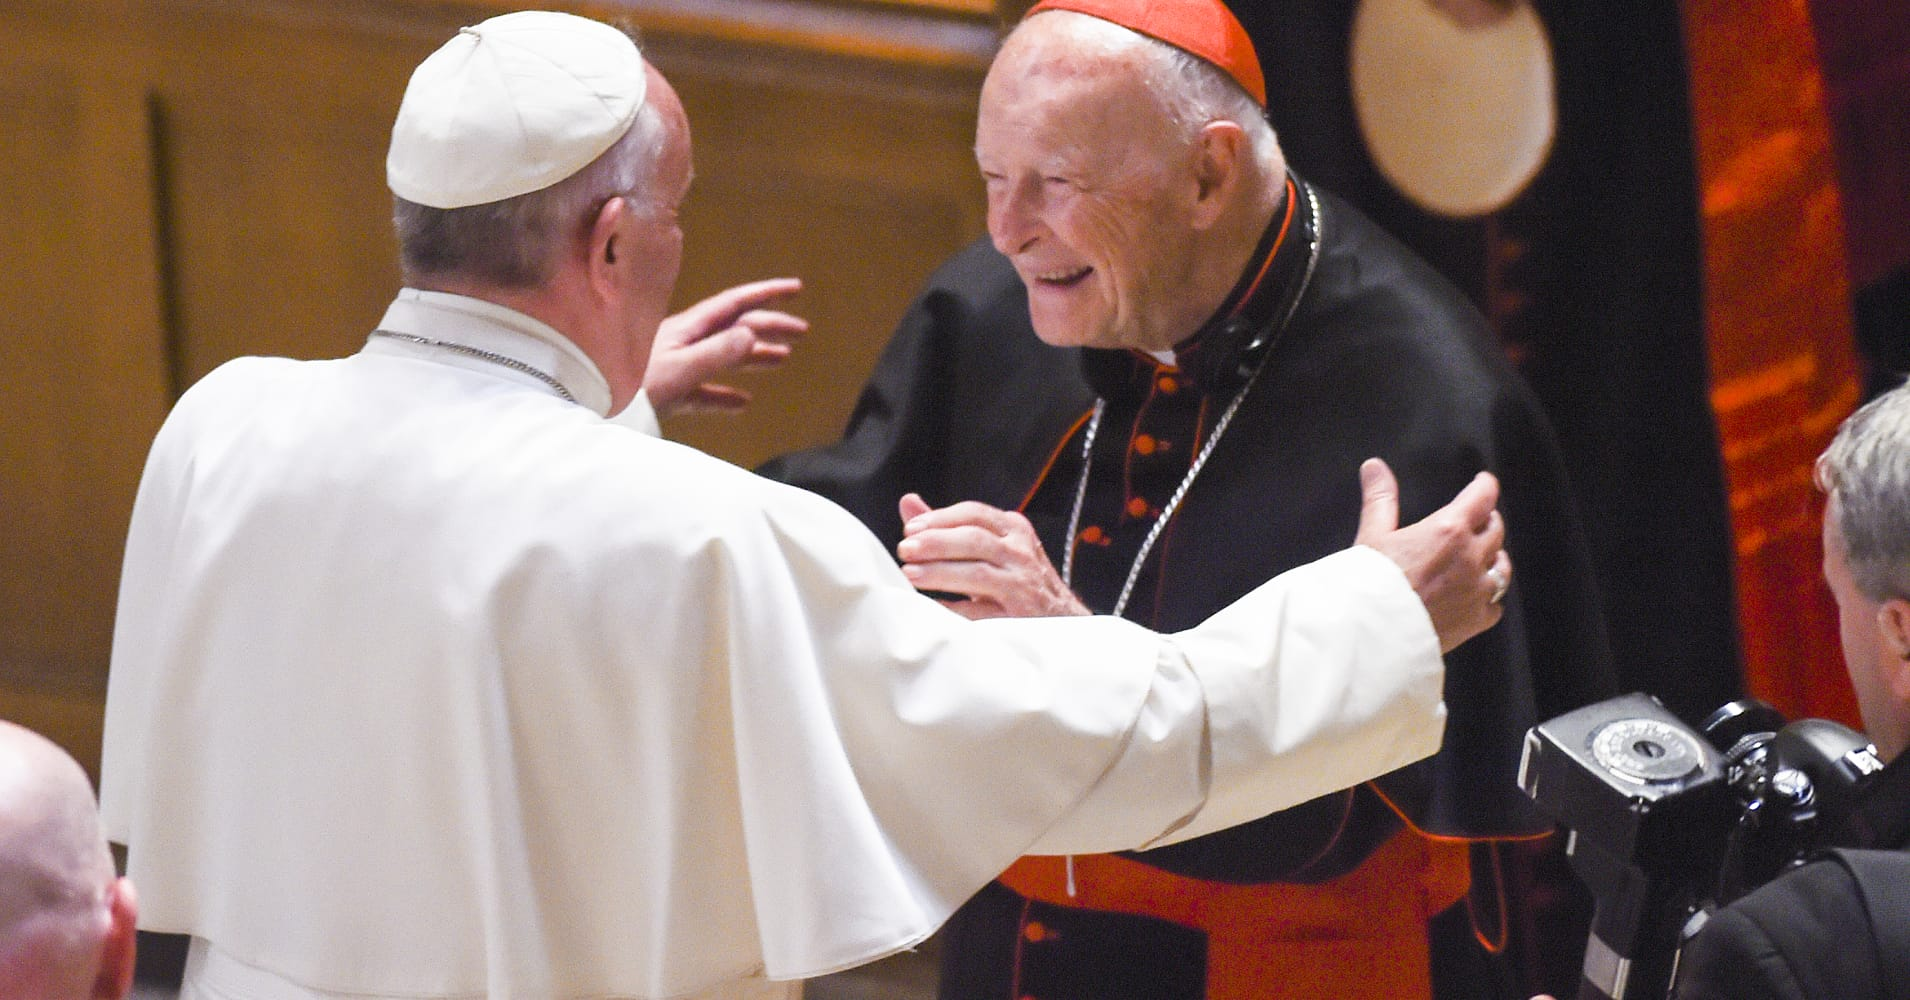 Former US cardinal Theodore McCarrick defrocked by Pope Francis over sexual misconduct allegations